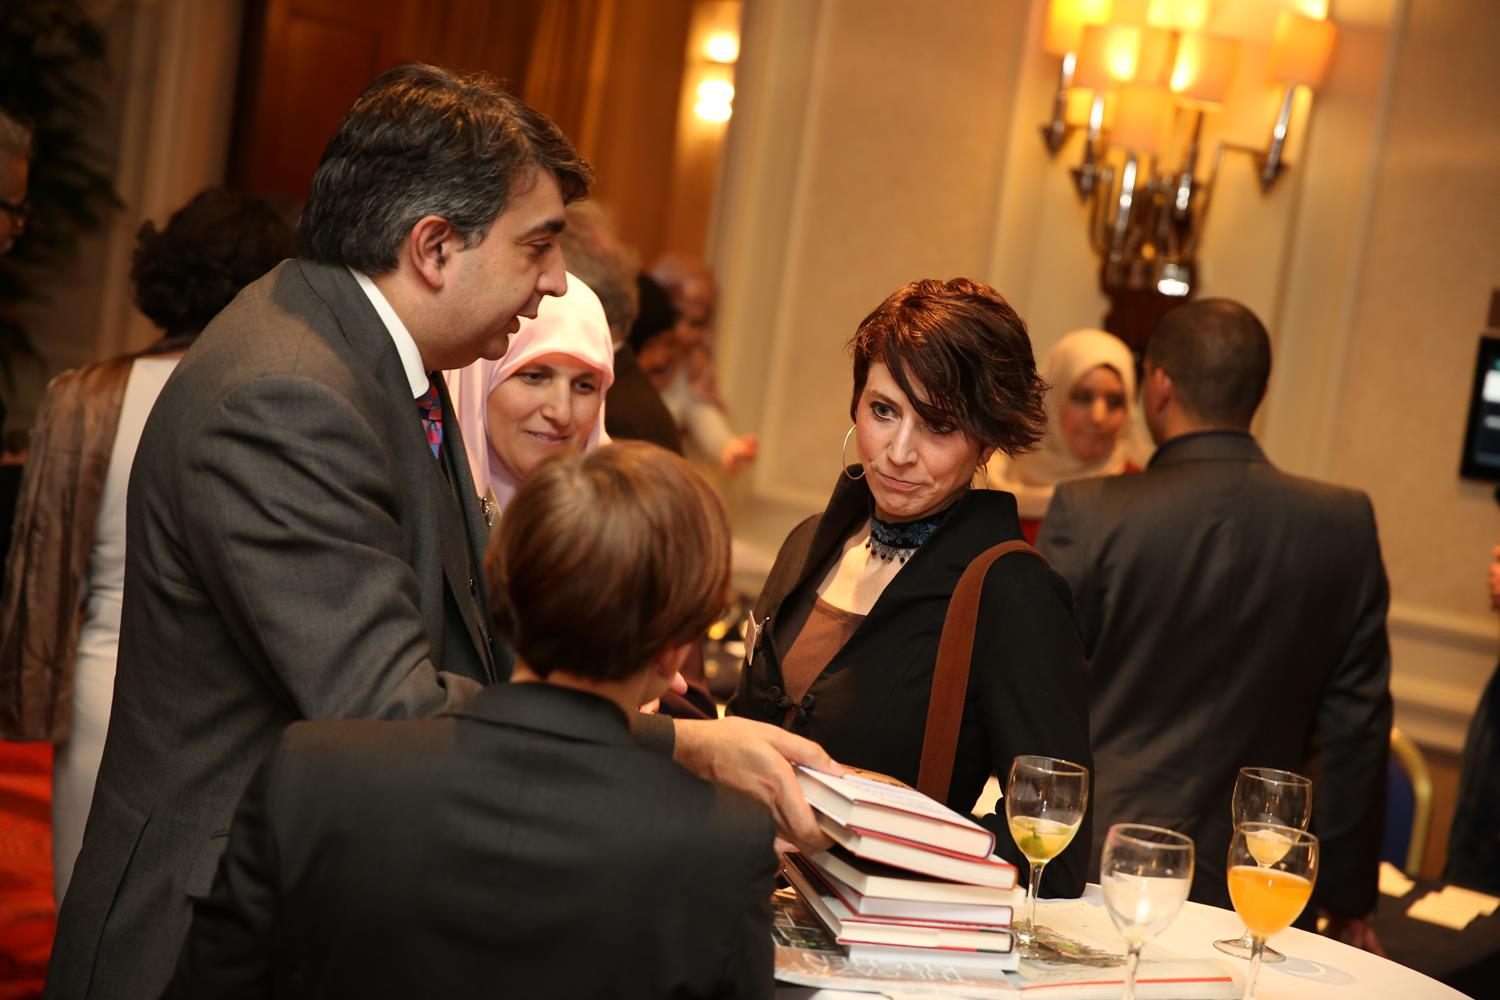 Corporate Photography of business people talking taken by MAKSAM London Photographer